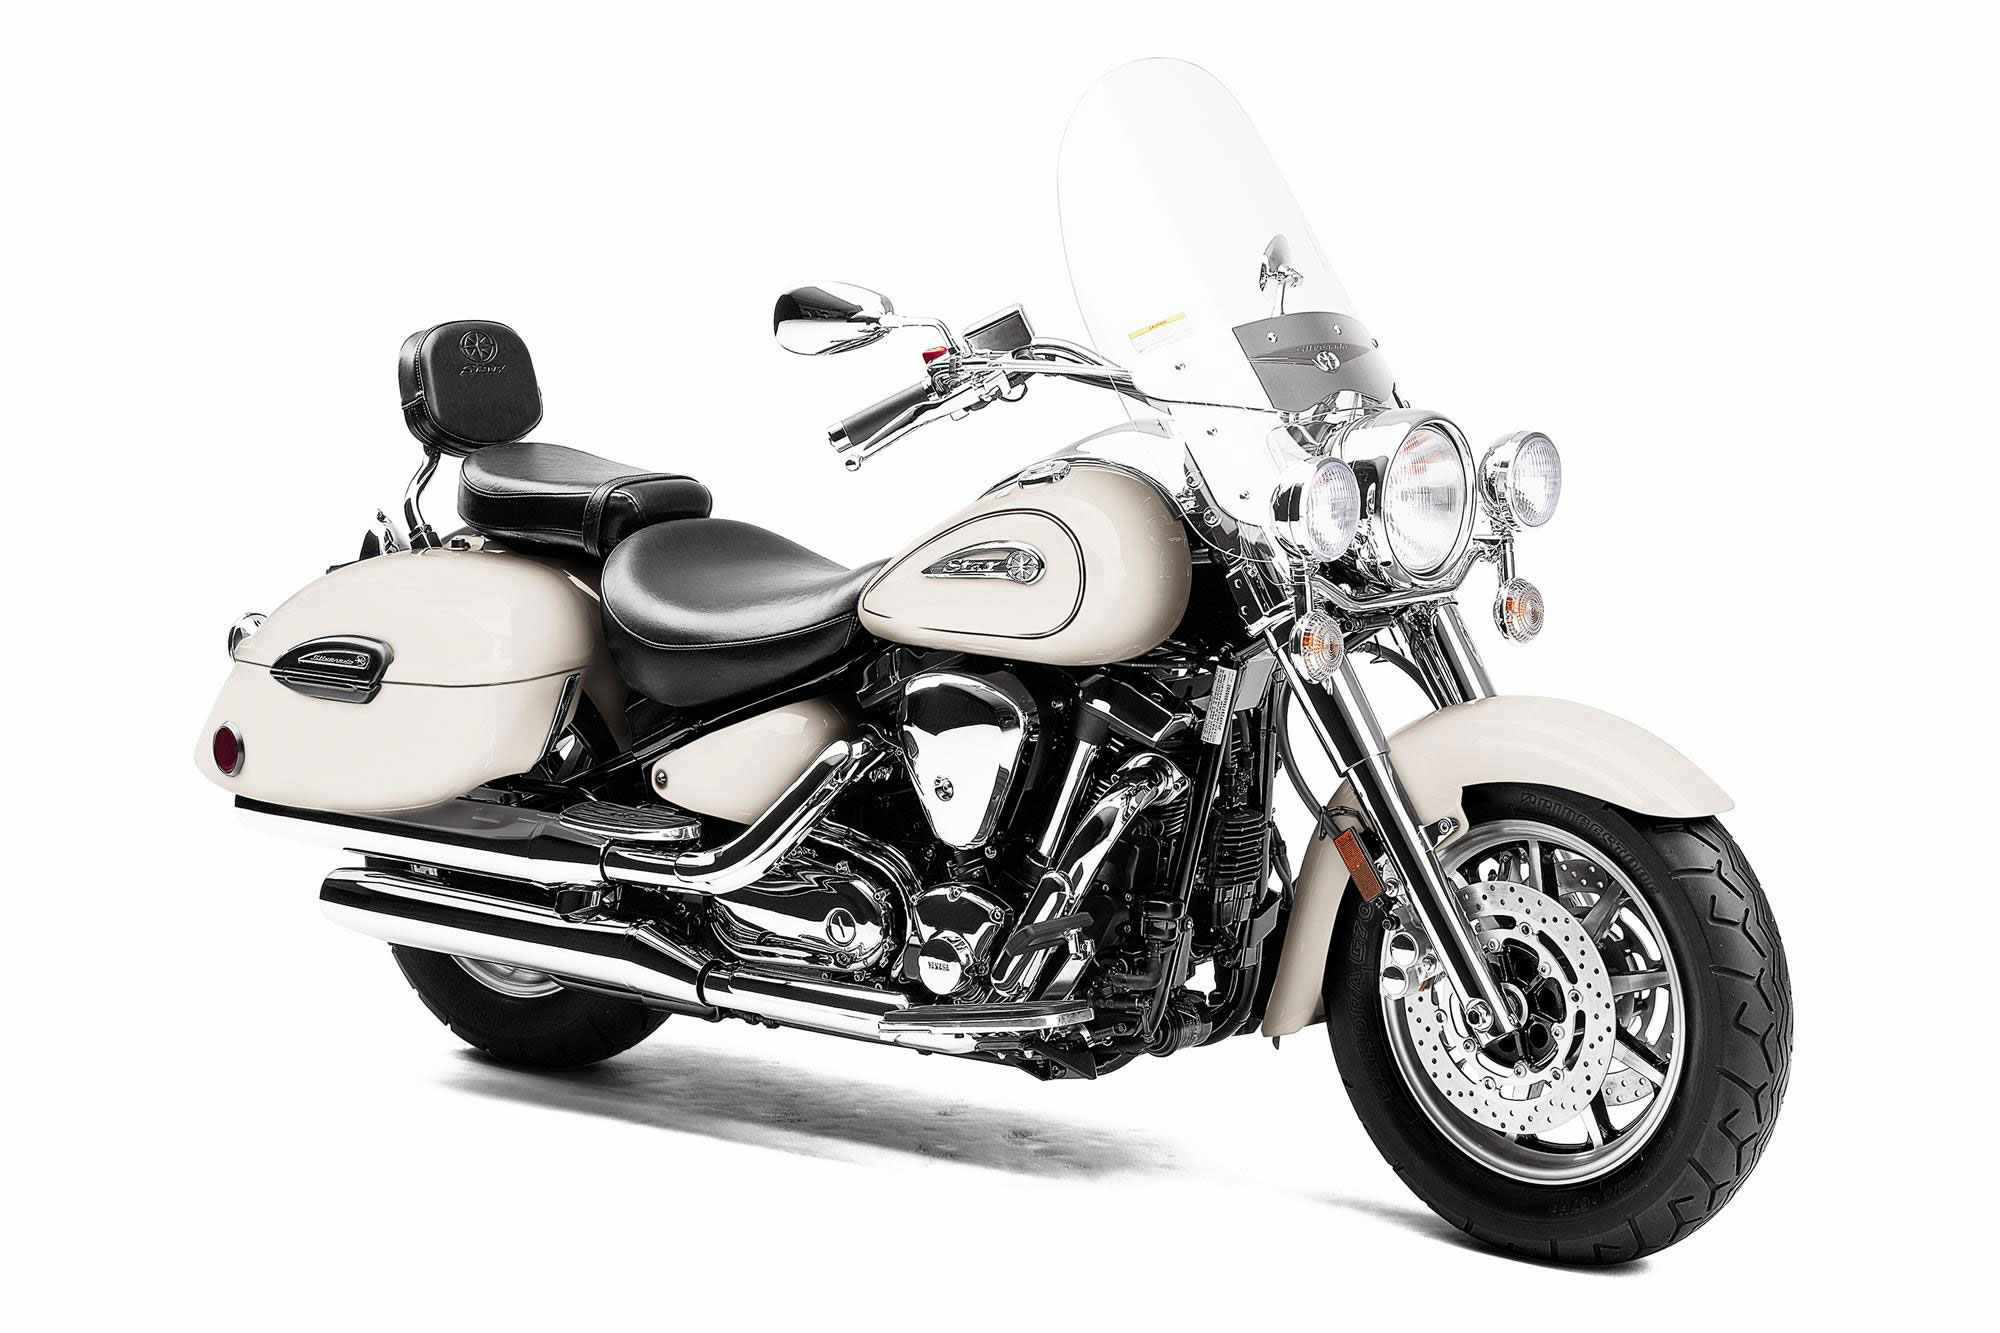 Yamaha Road Star S 2011 #8